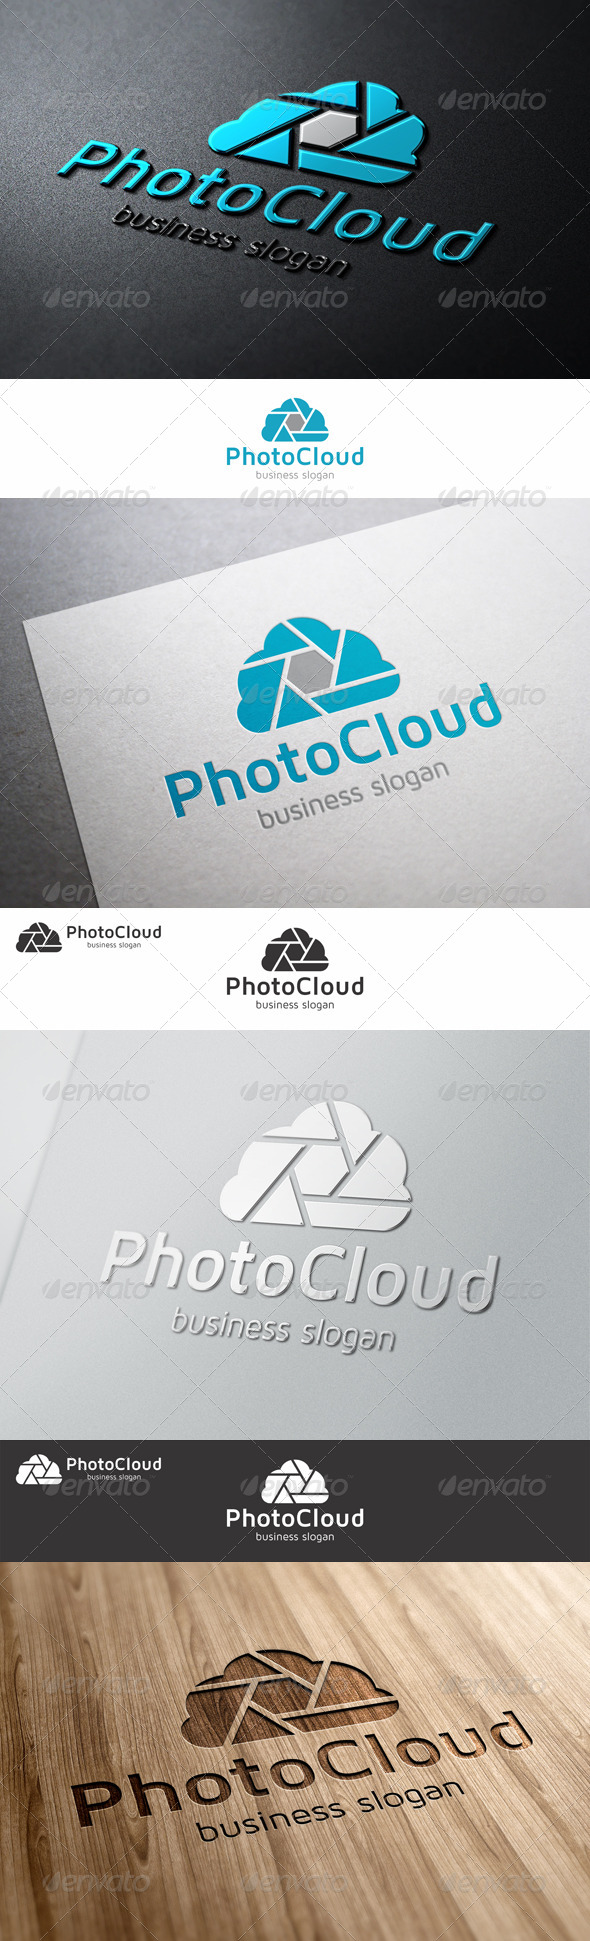 GraphicRiver Photo Cloud Logo Template 8736912